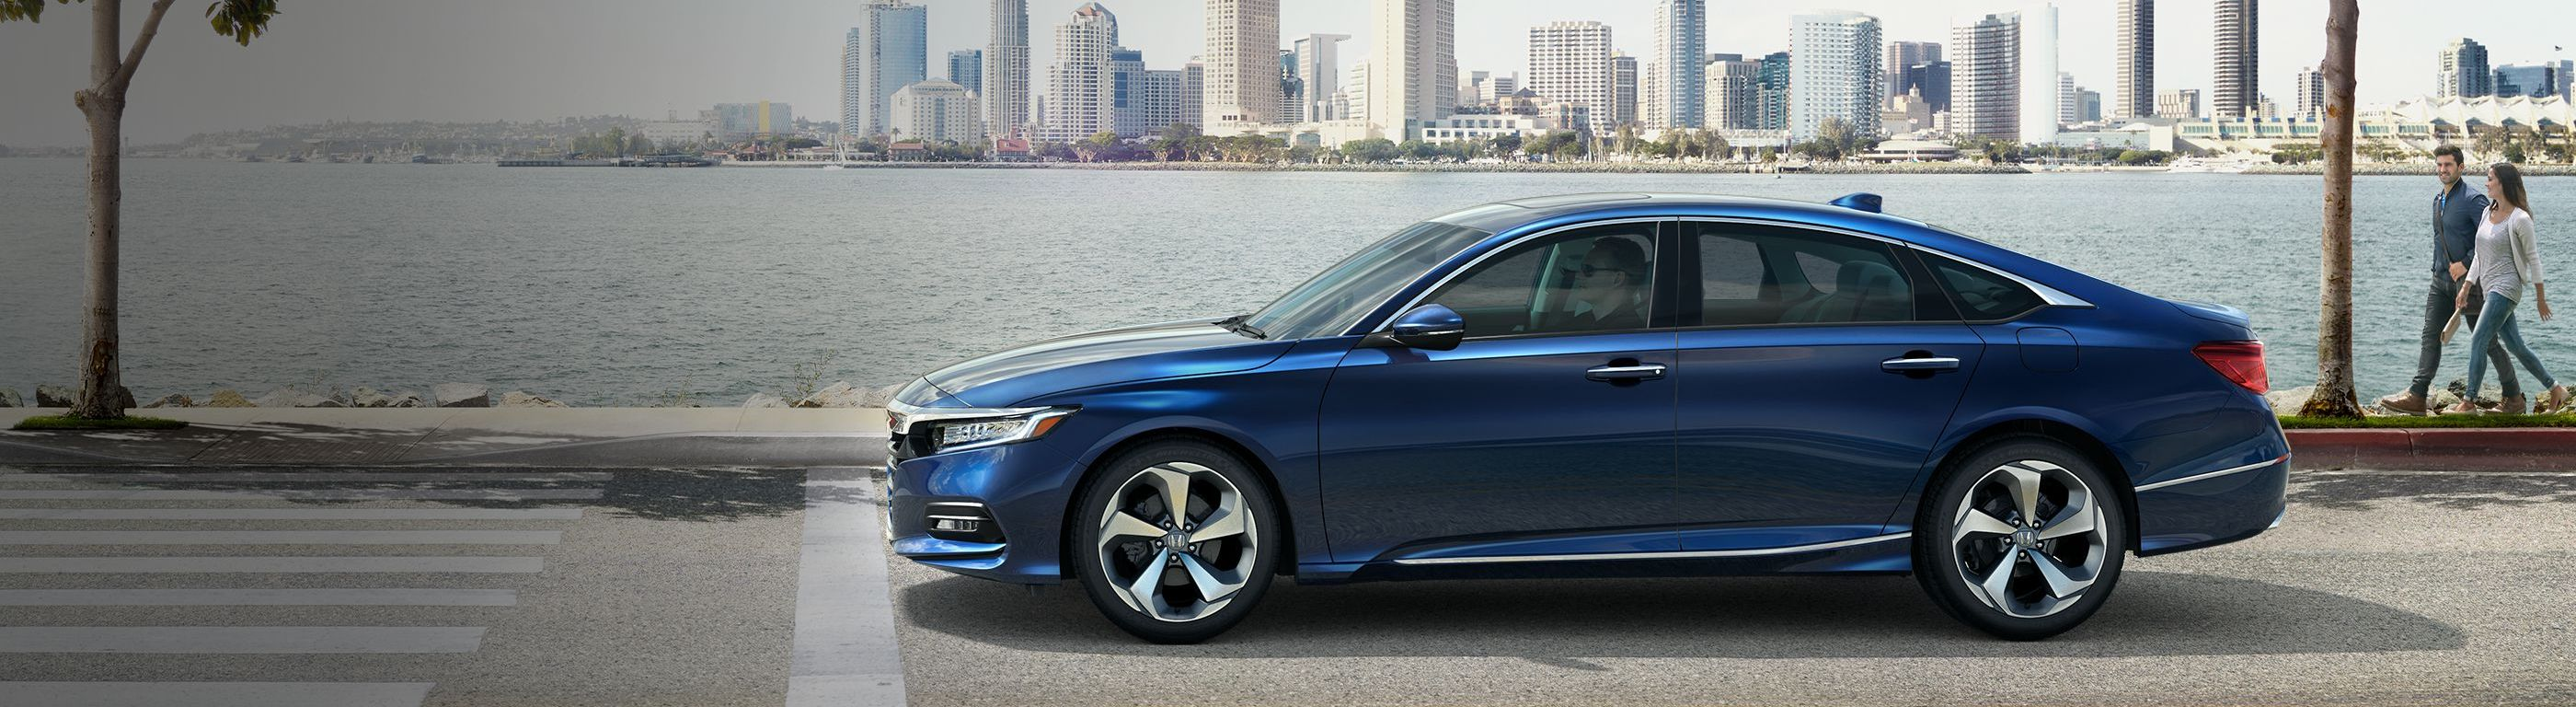 2018 Honda Accord for Sale in Brighton, MI